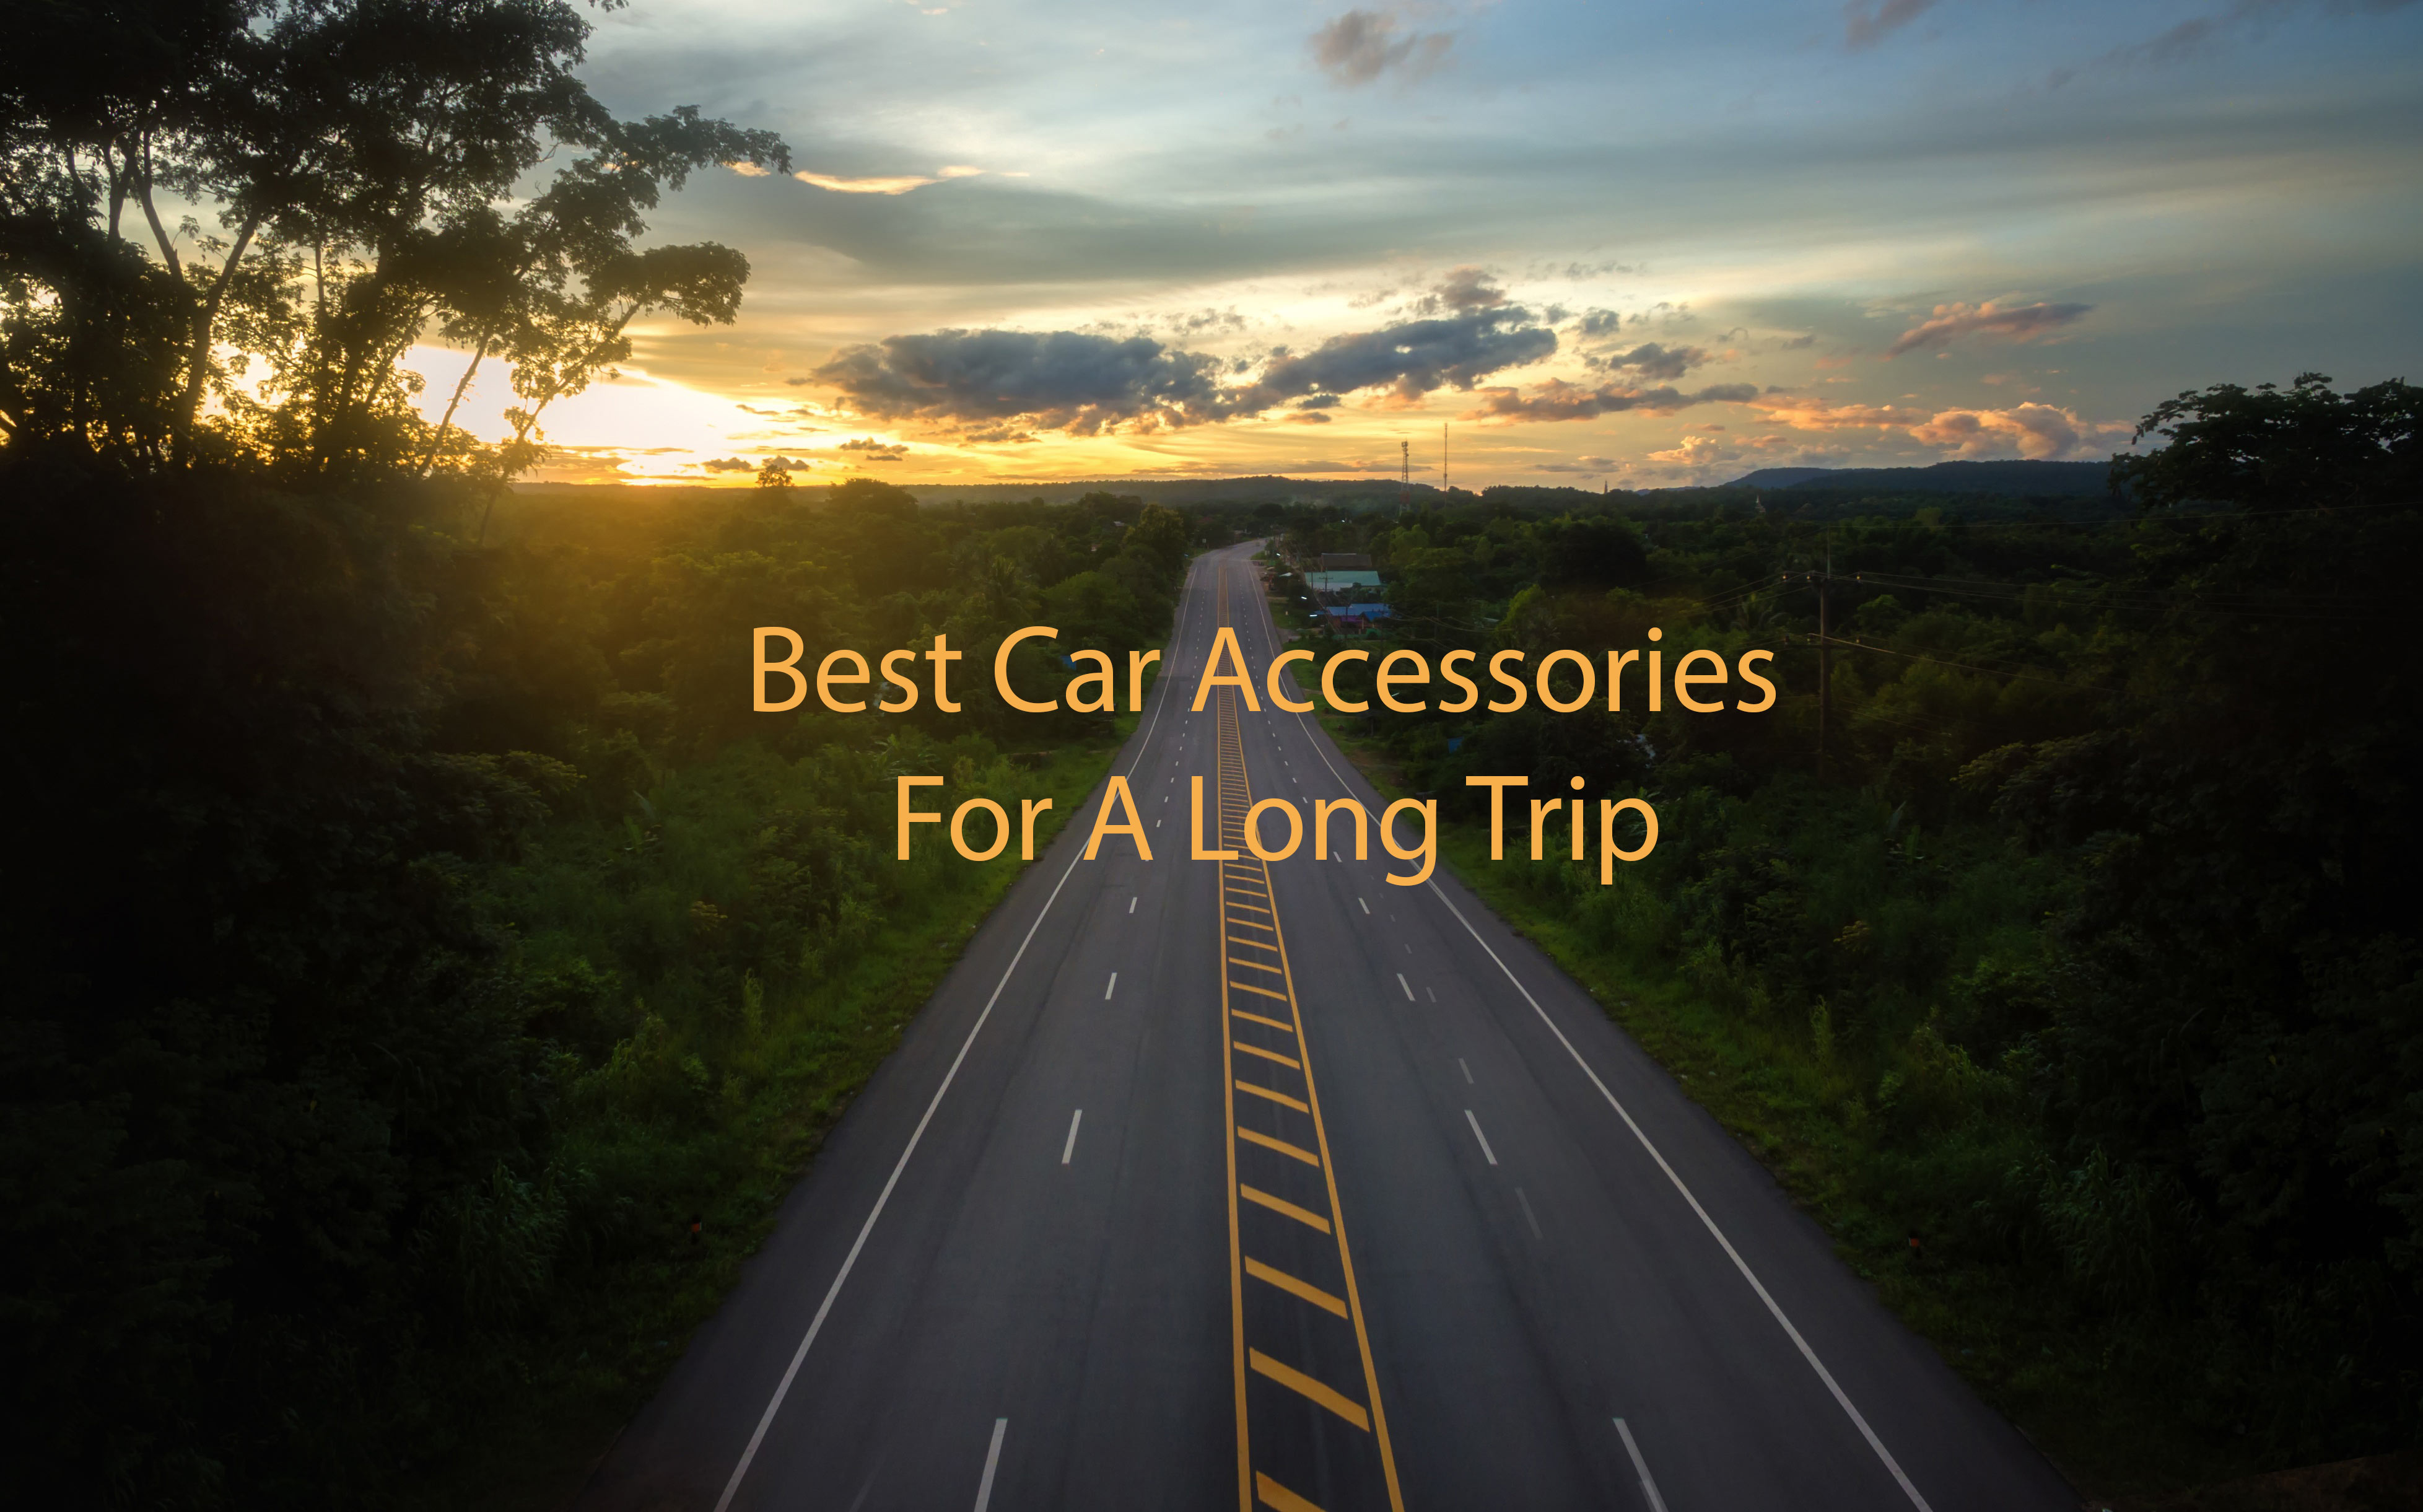 Car accessories that you must buy for a long trip in India